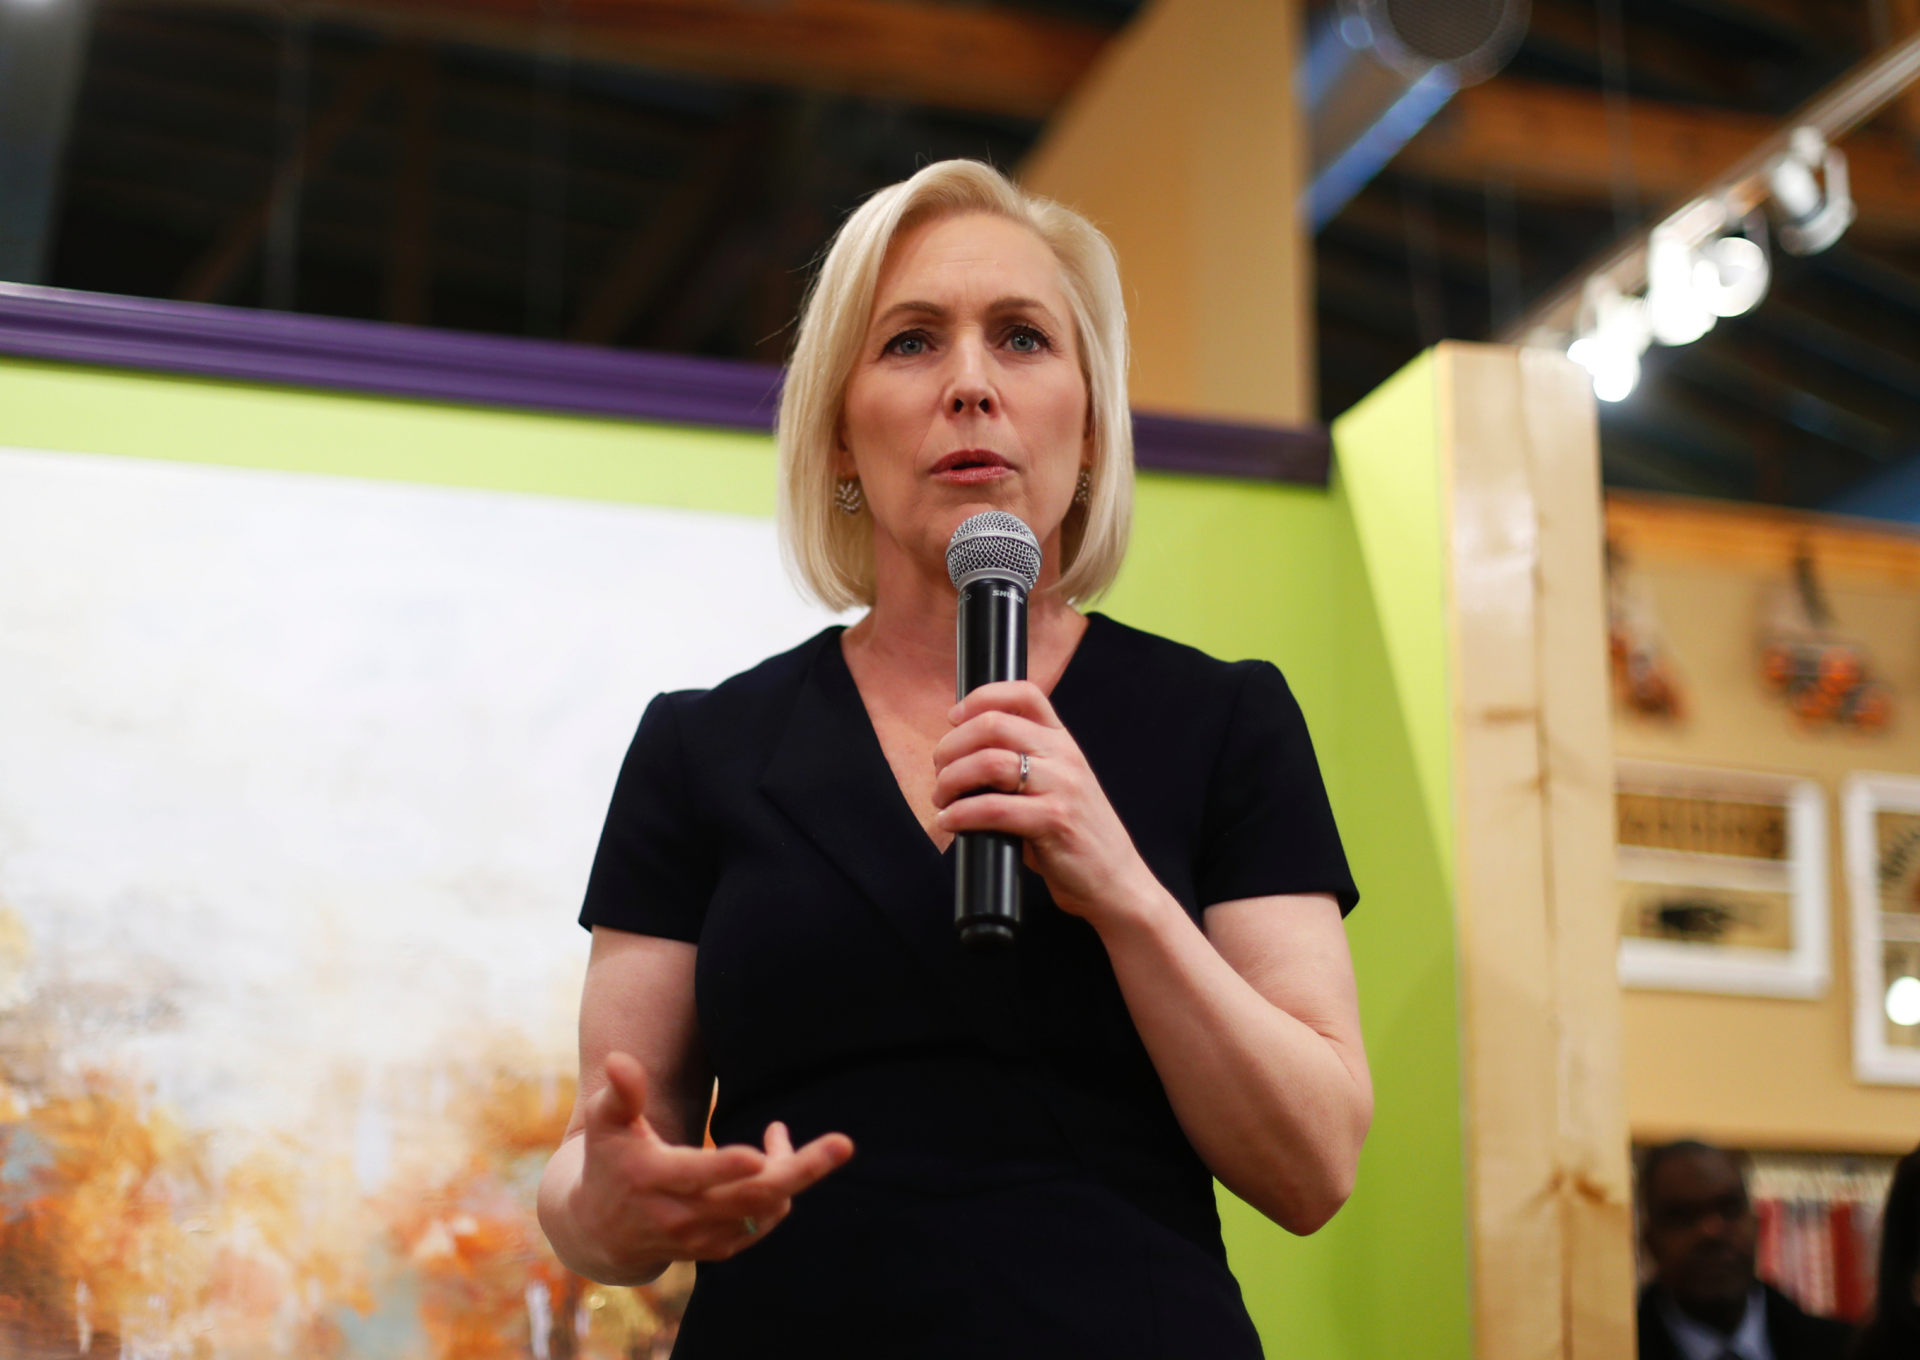 Westlake Legal Group ContentBroker_contentid-6820363ddbd4416d9743e30c818d348a Gillibrand raises $3M in first quarter, trailing many other 2020 candidates Samuel Chamberlain fox-news/politics/elections/fund-raising fox-news/politics/elections/democrats fox-news/politics/2020-presidential-election fox-news/person/kirsten-gillibrand fox news fnc/politics fnc fa87e4c2-597c-515d-a7d1-754e20b5a0a1 article